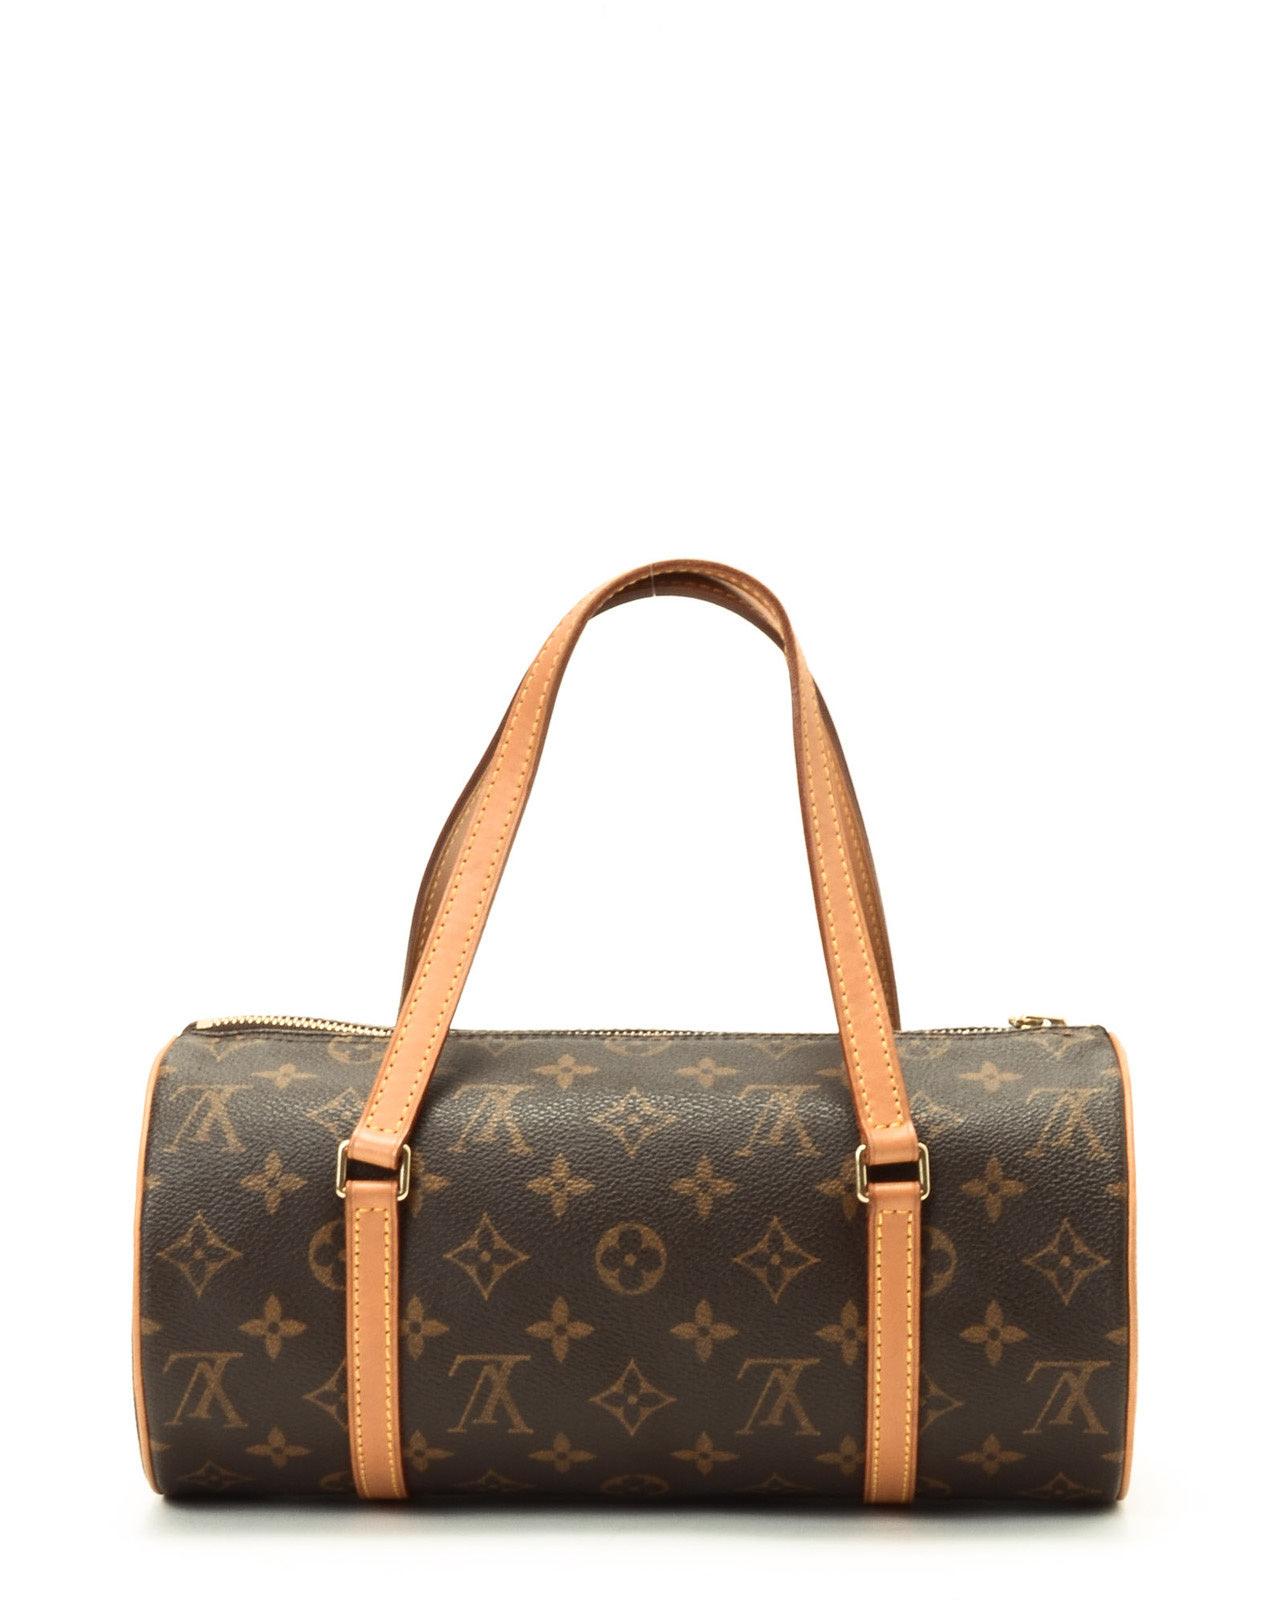 Property Brothers Apply Louis Vuitton Papillon 26 Bag In Brown For Men Lyst